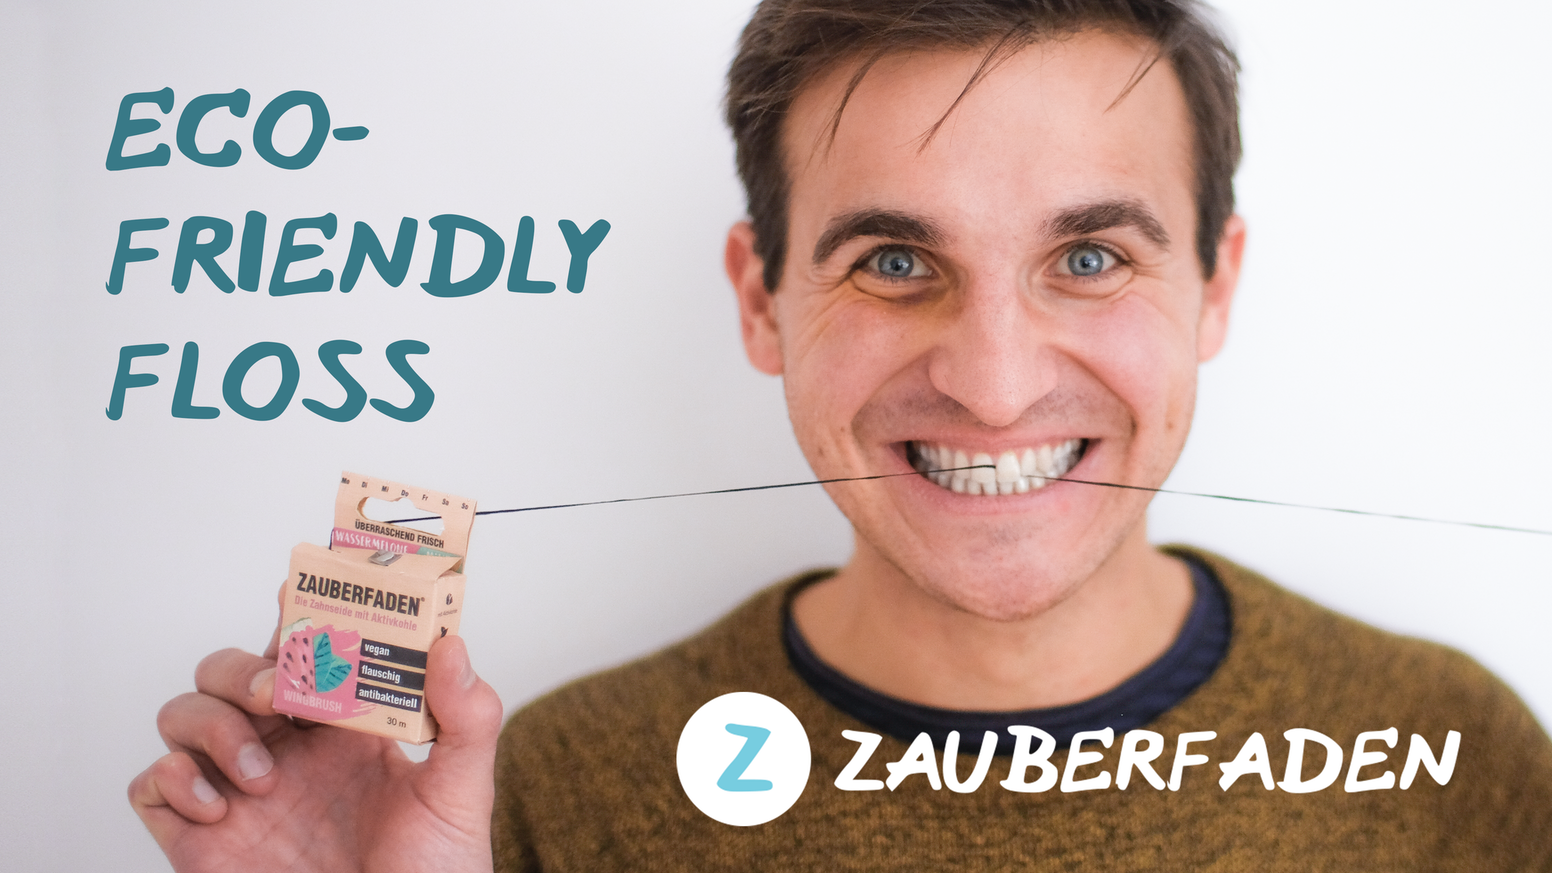 Zauberfaden is a vegan floss in a biodegradable packaging - made with charcoal and xylitol for high cleaning power